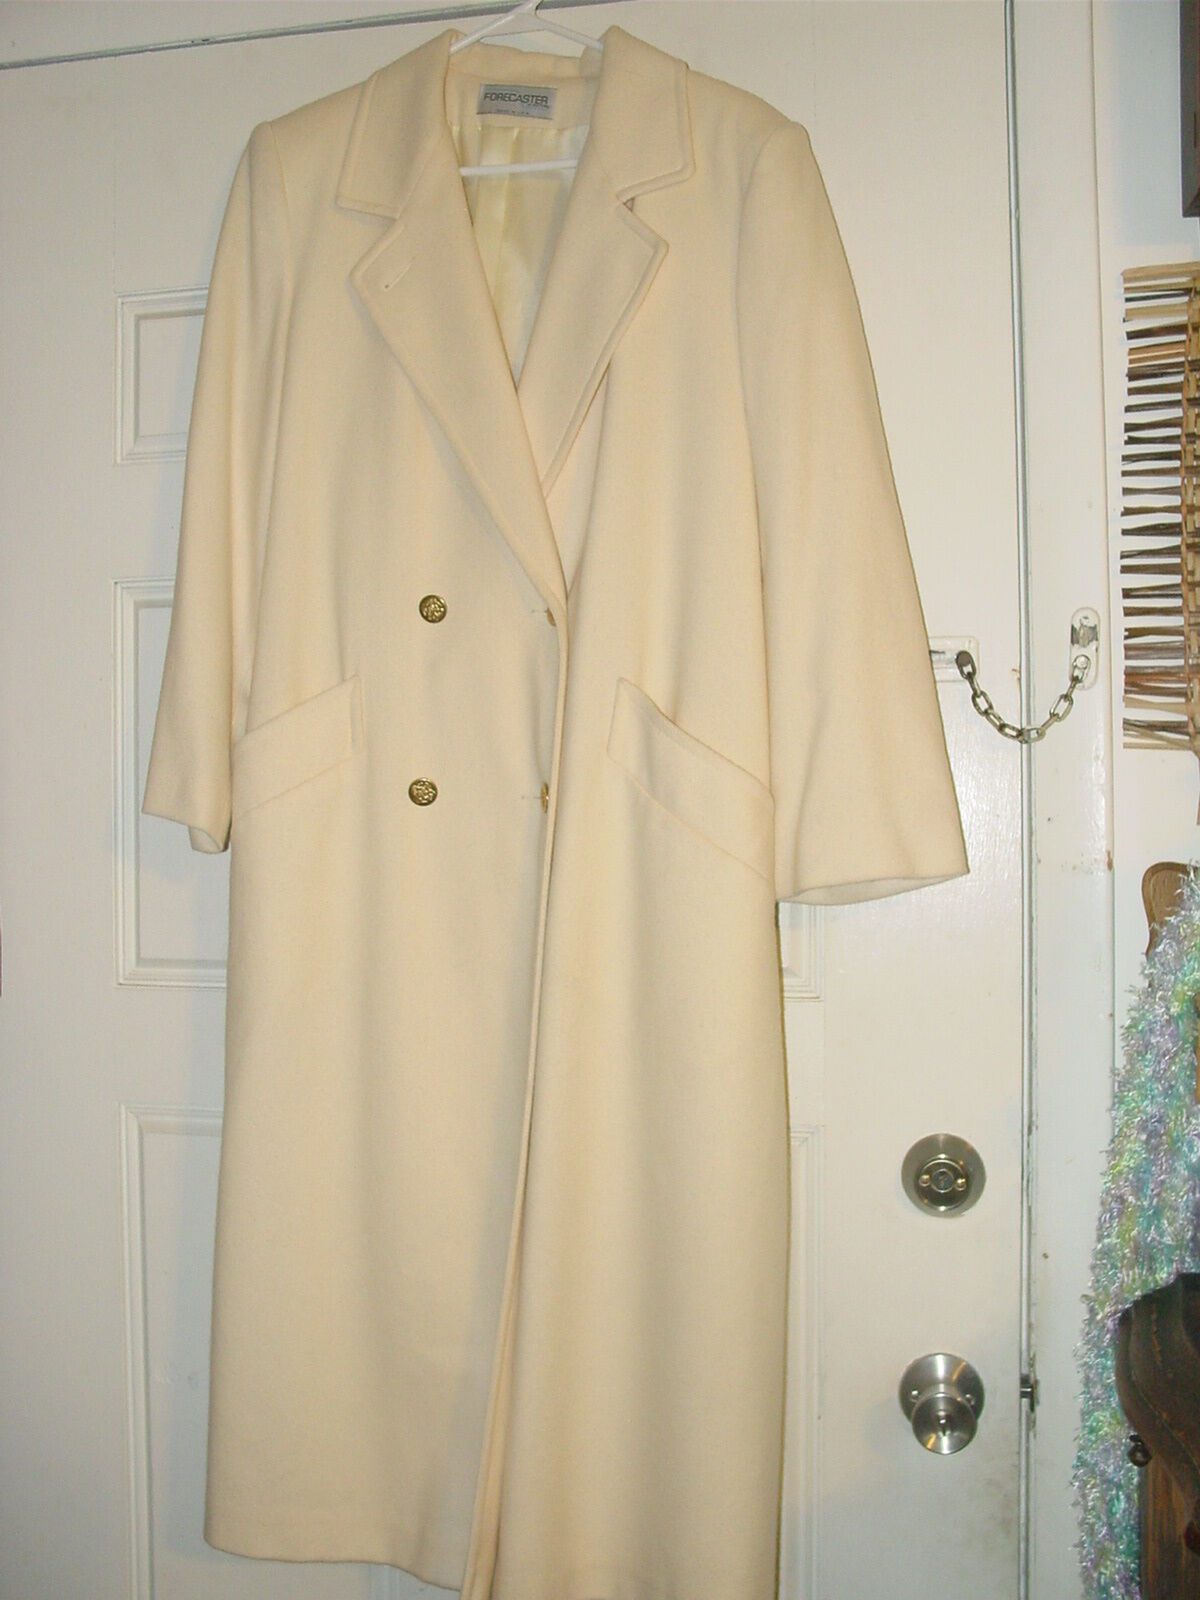 FORECASTER 9  10 WOOL LONG COAT IVORY DOUBLE BREASTED CLASSIC EXQUISITE